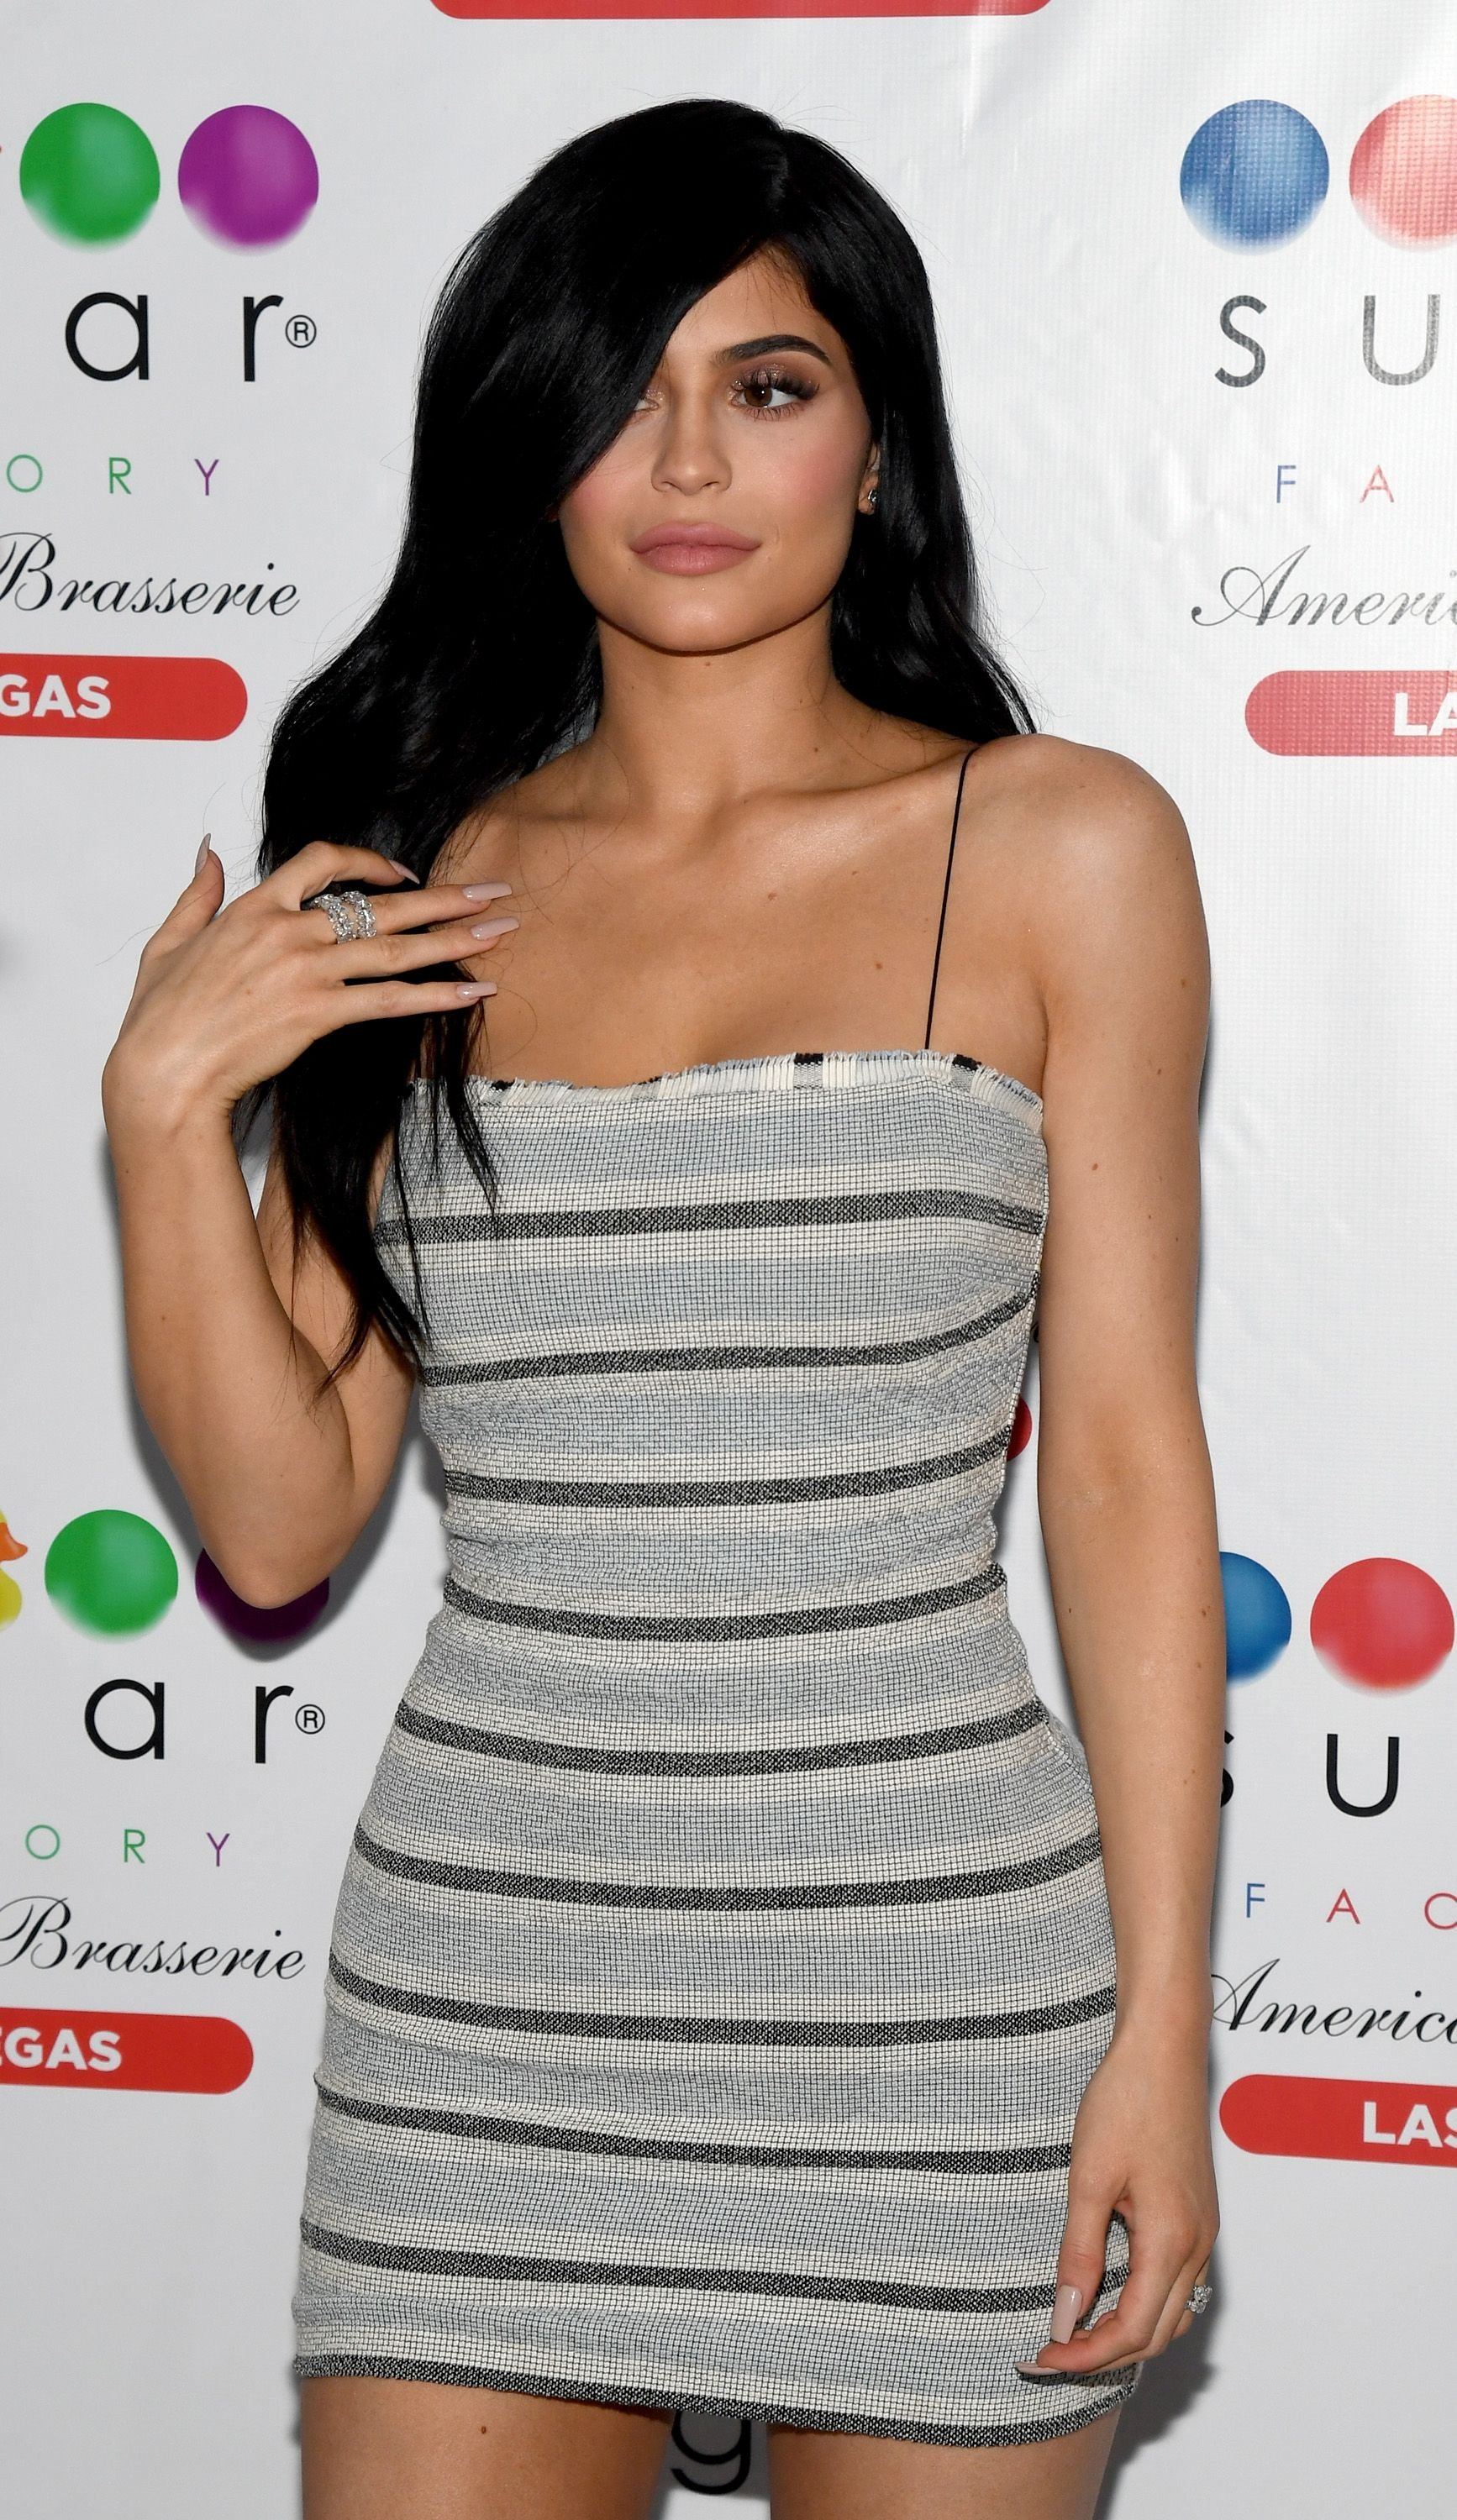 Kylie Jenner poses inside Sugar Factory American Brasserie at the Fashion Show mall on April 22, 2017, in Las Vegas, Nevada | Photo: Ethan Miller/Getty Images